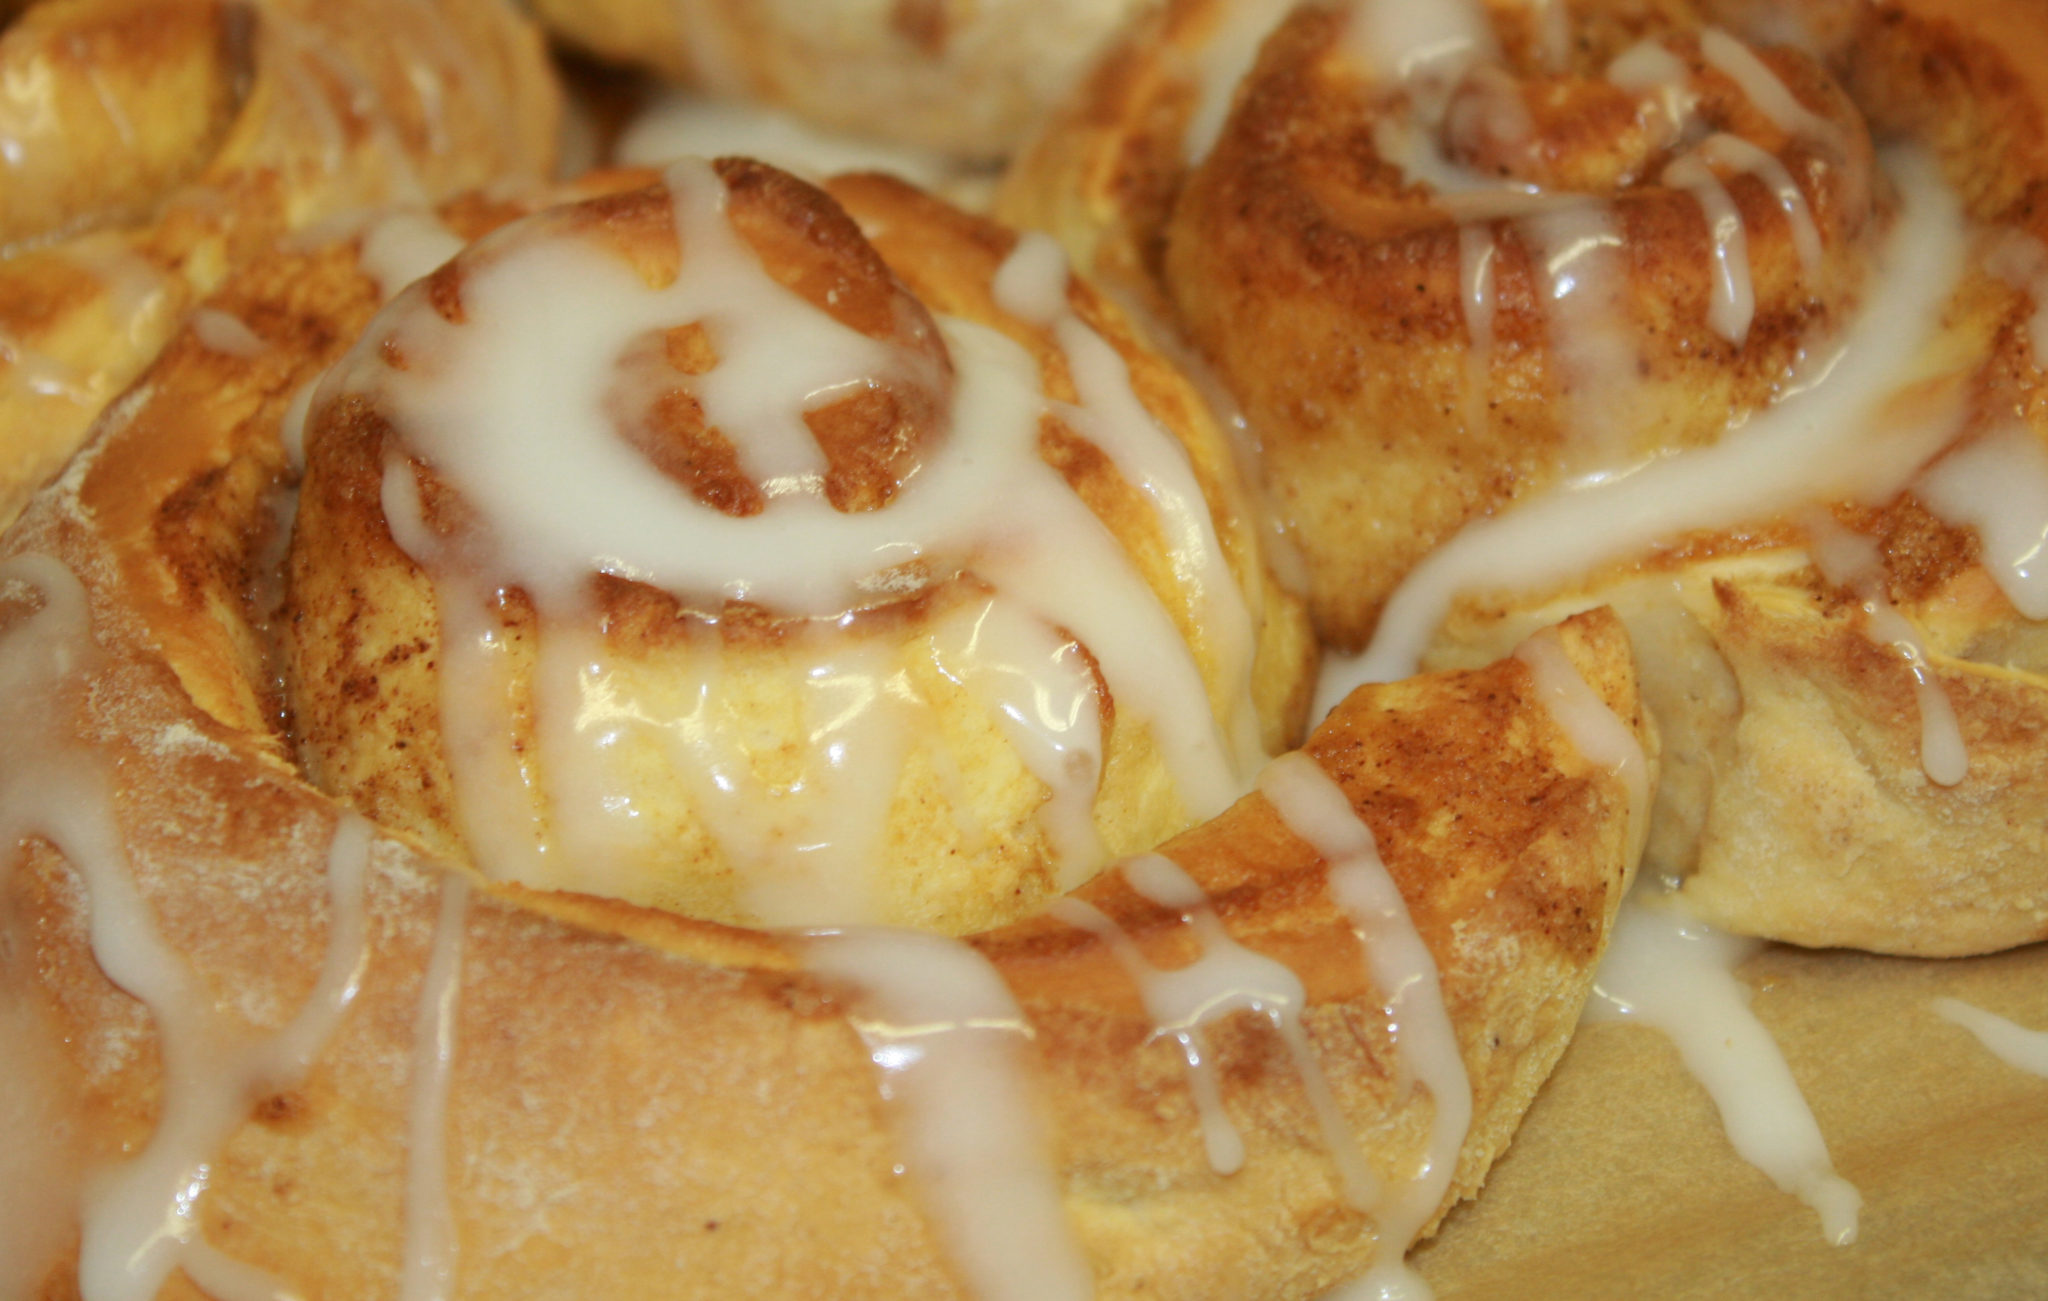 Cinnamon Swirls Fresh Baked 7 days a week at Sullivans Country Grocer